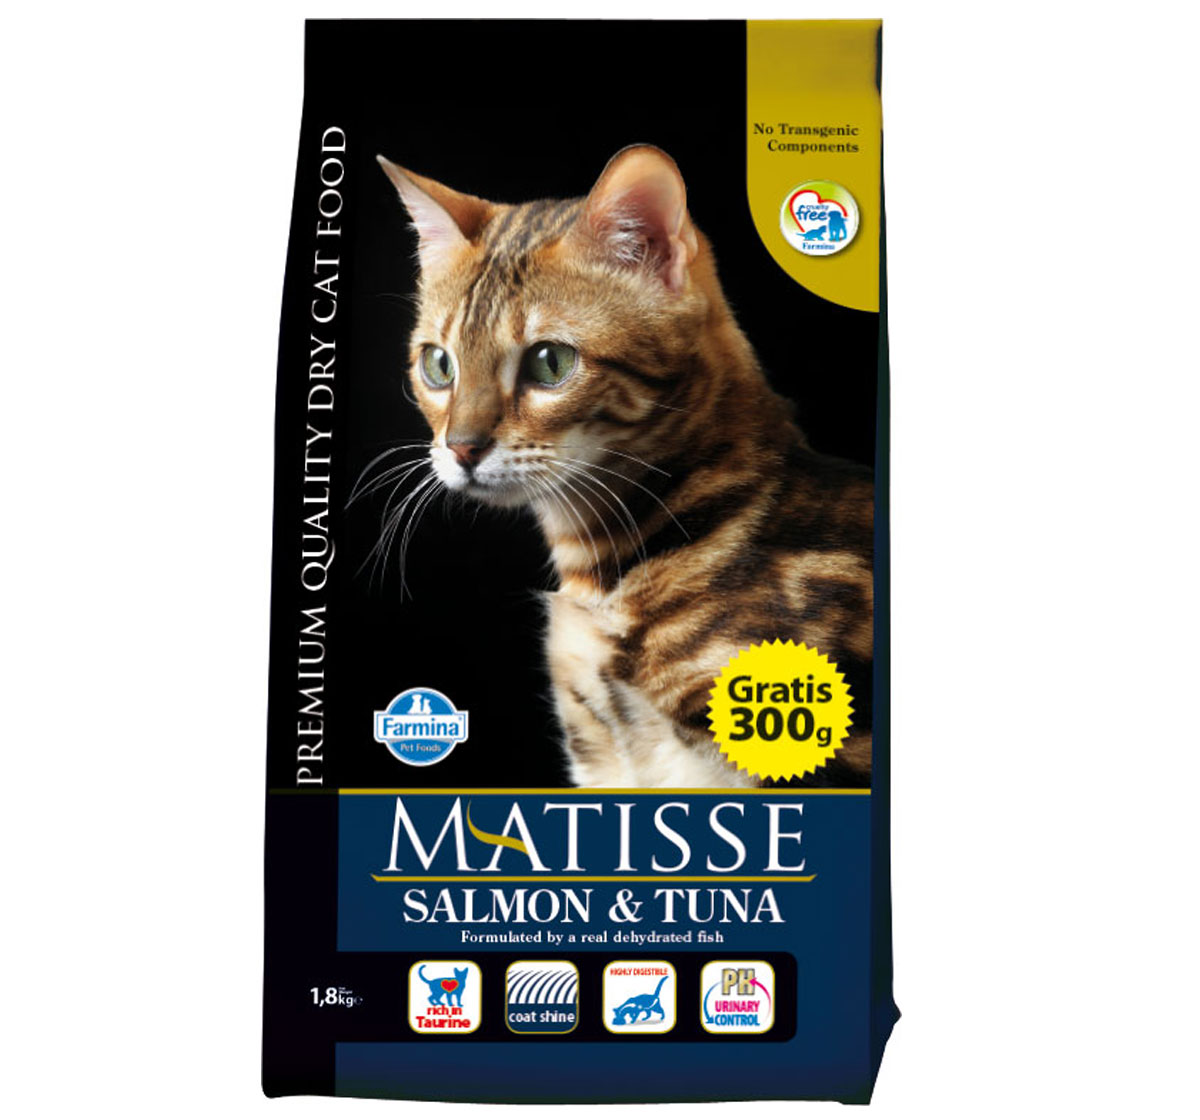 Matisse Adult Cat Food Salmon Amp Tuna 1 5 Kg Dogspot